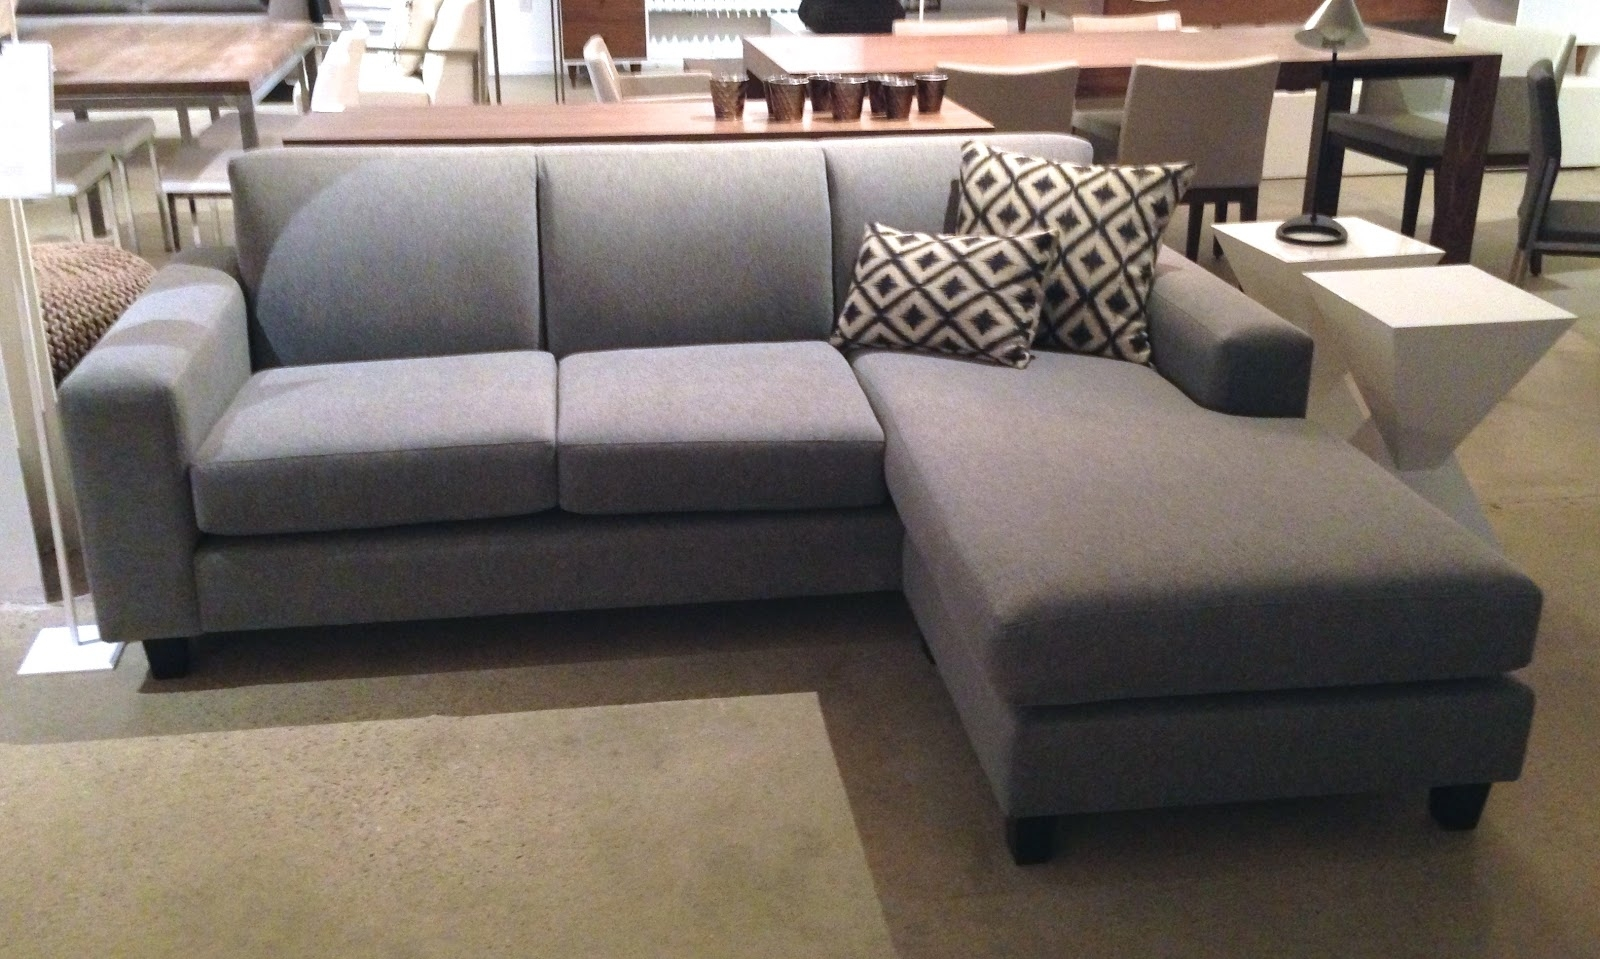 Modular Sectional Sofa Canada | Functionalities pertaining to Sectional Sofas in Canada (Image 4 of 10)